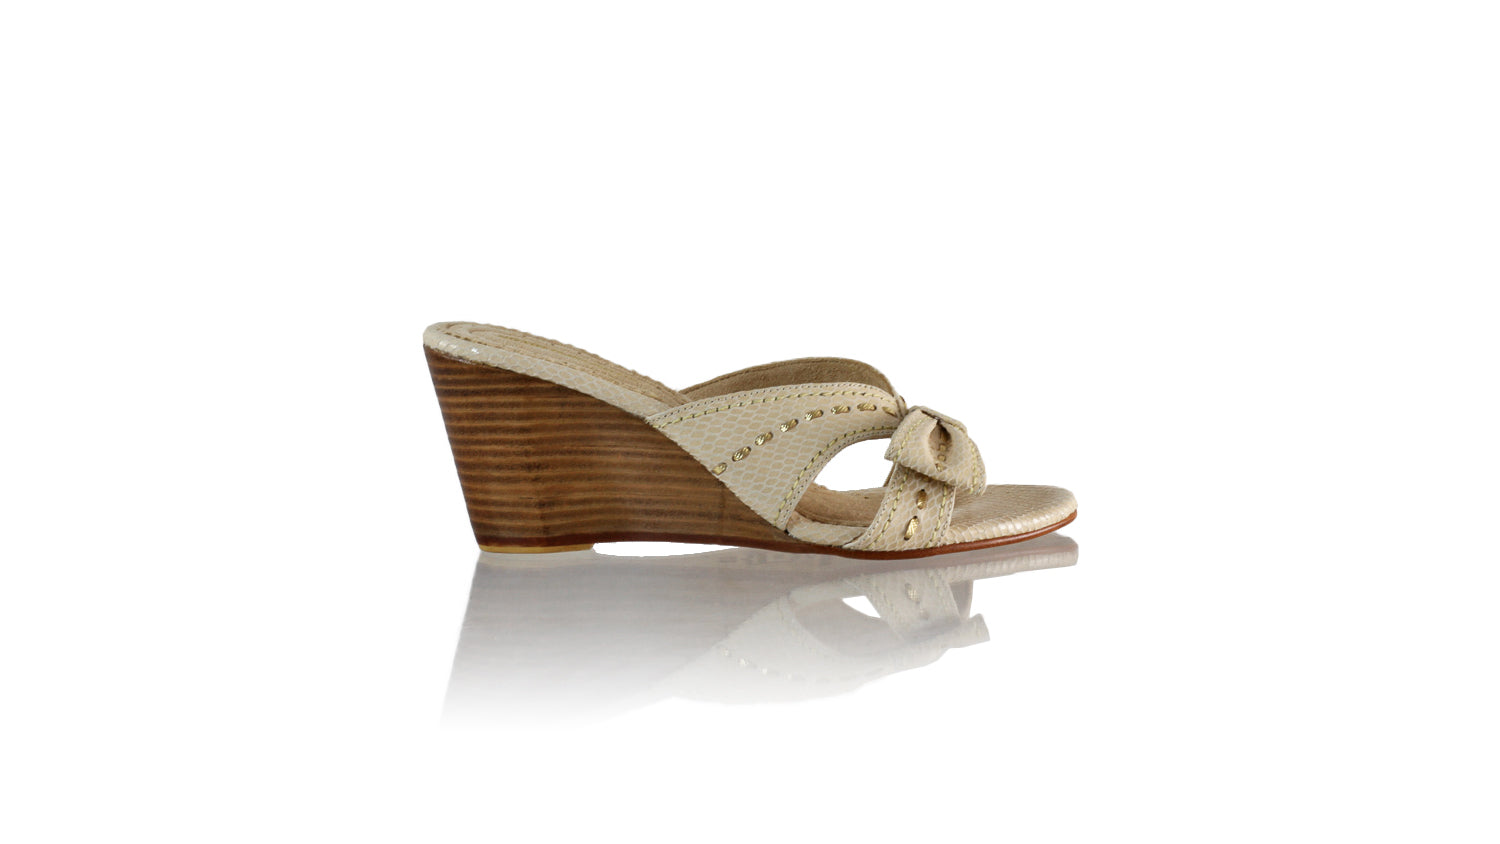 Leather-shoes-Sri 80mm Wedge - Nude Snake Print & Gold-sandals wedges-NILUH DJELANTIK-NILUH DJELANTIK